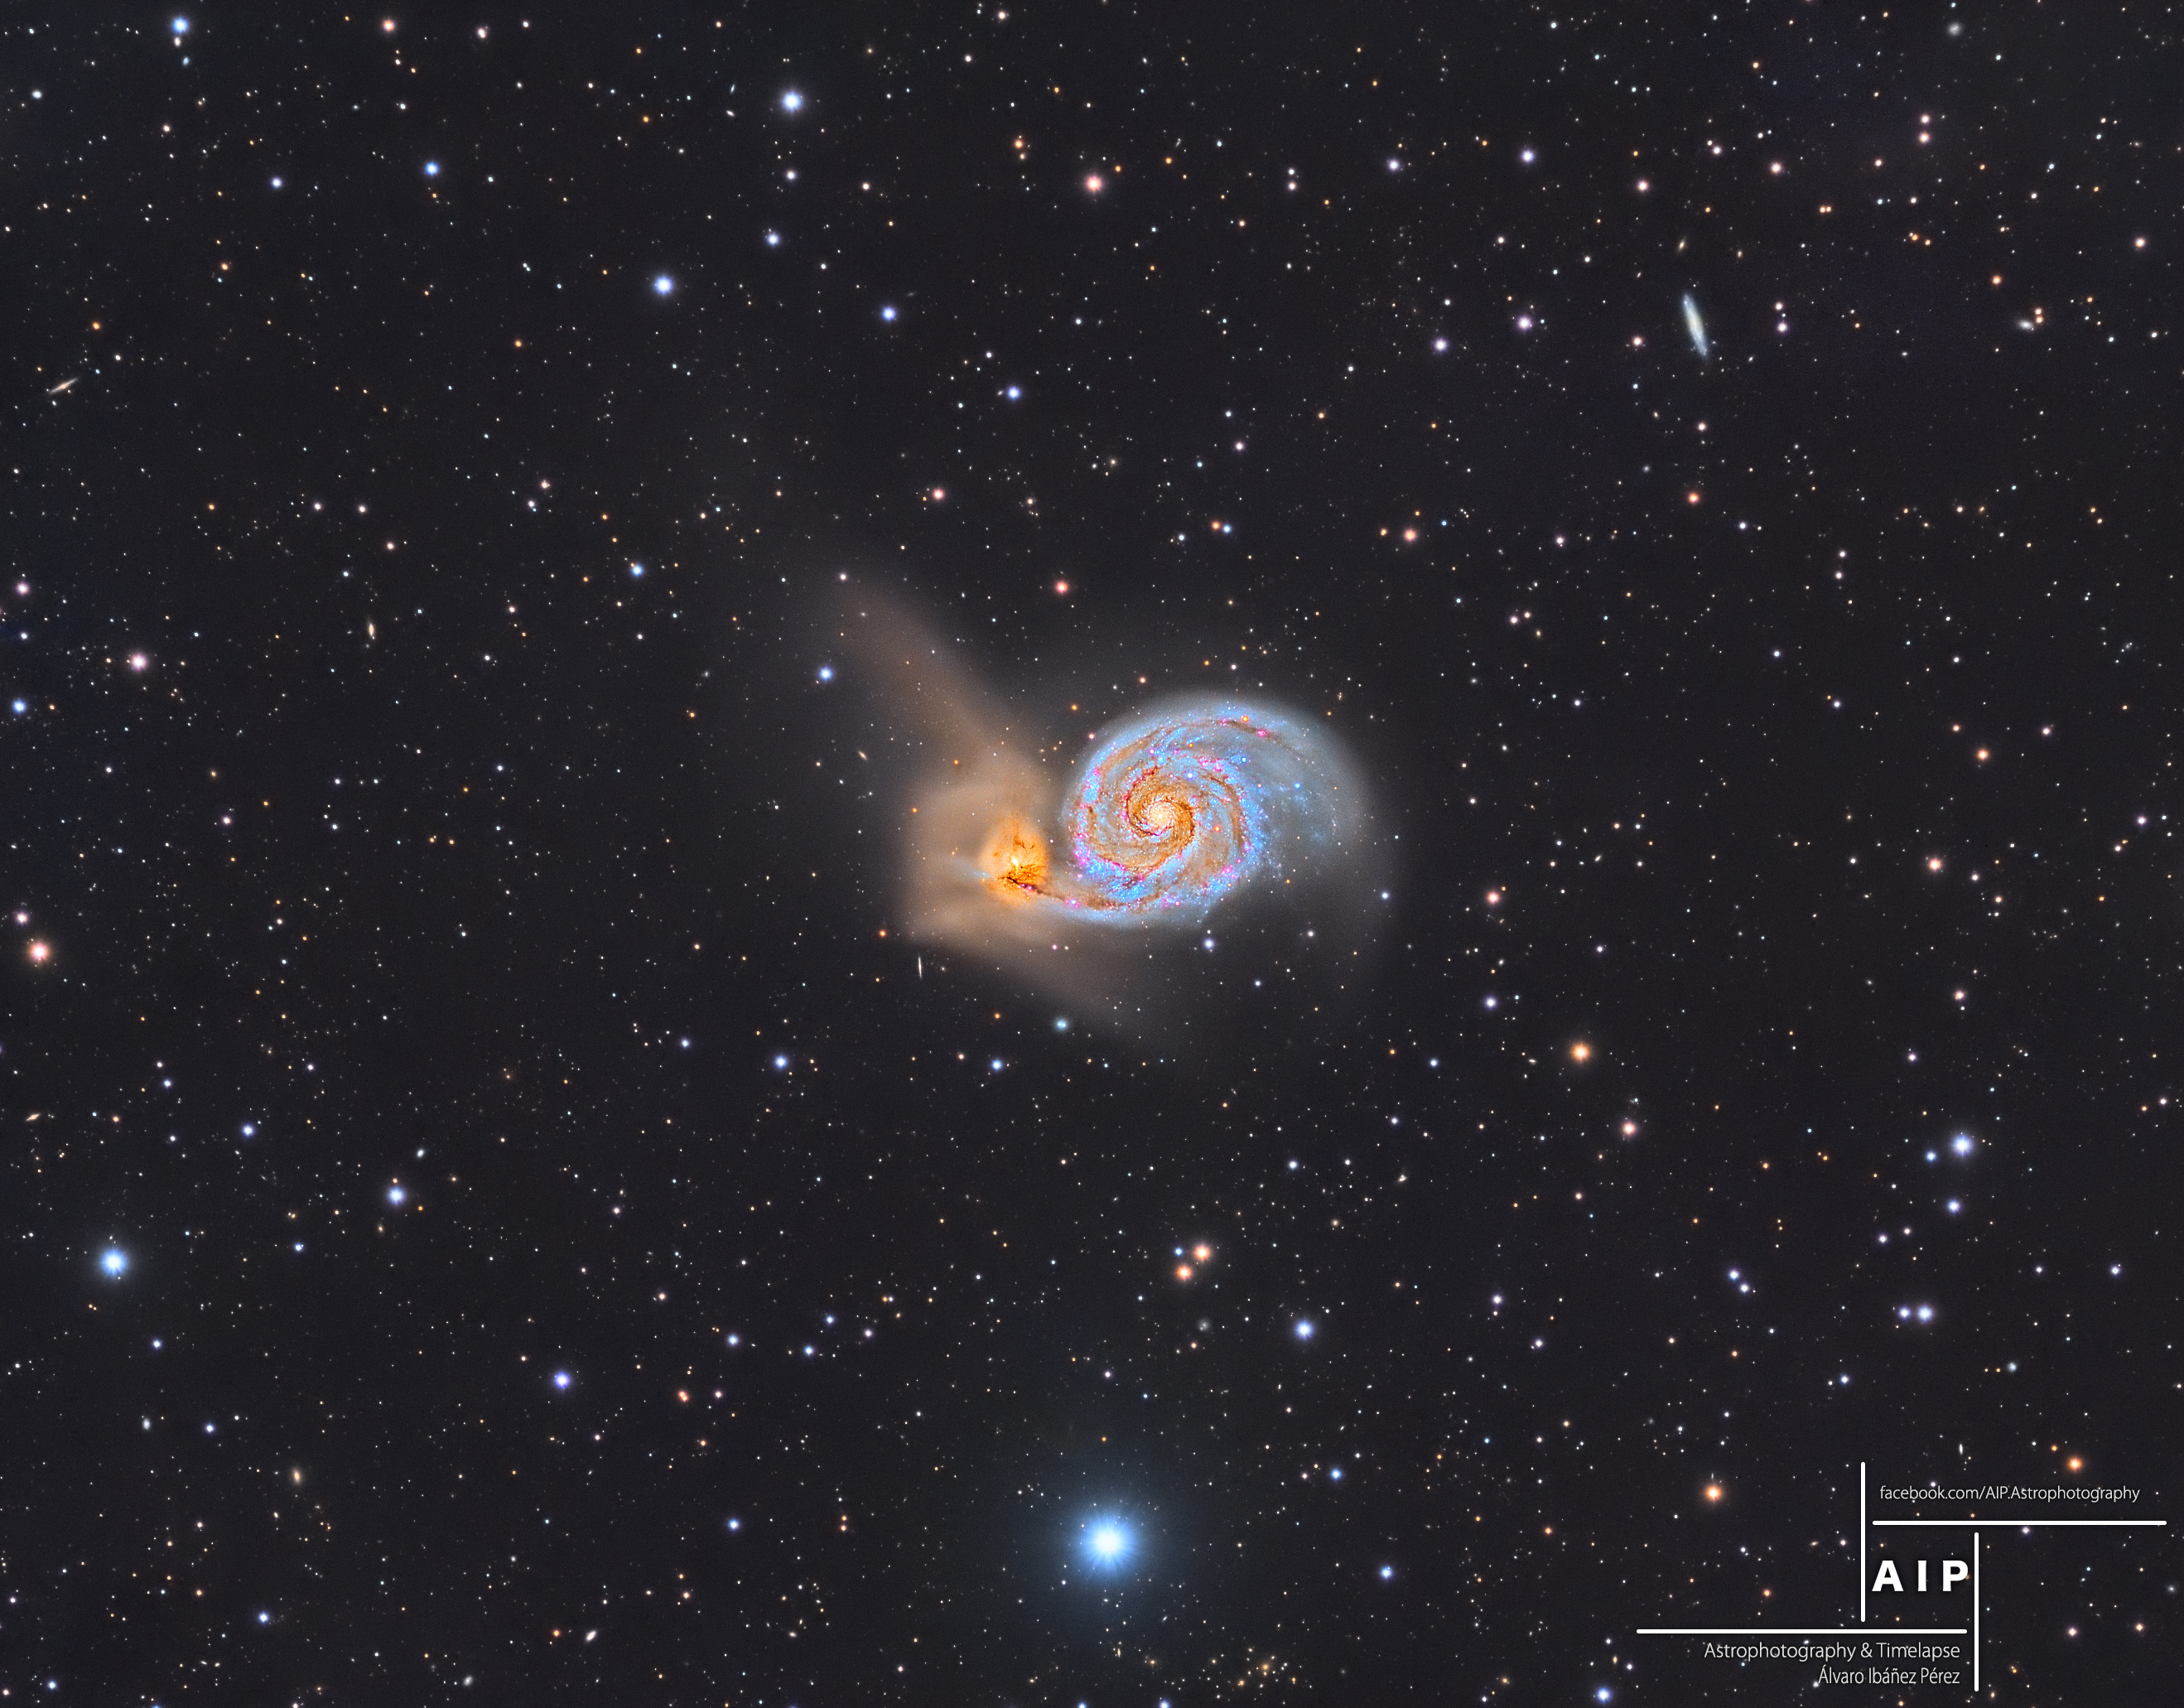 2016 September 6 - The Whirlpool Galaxy and Beyond